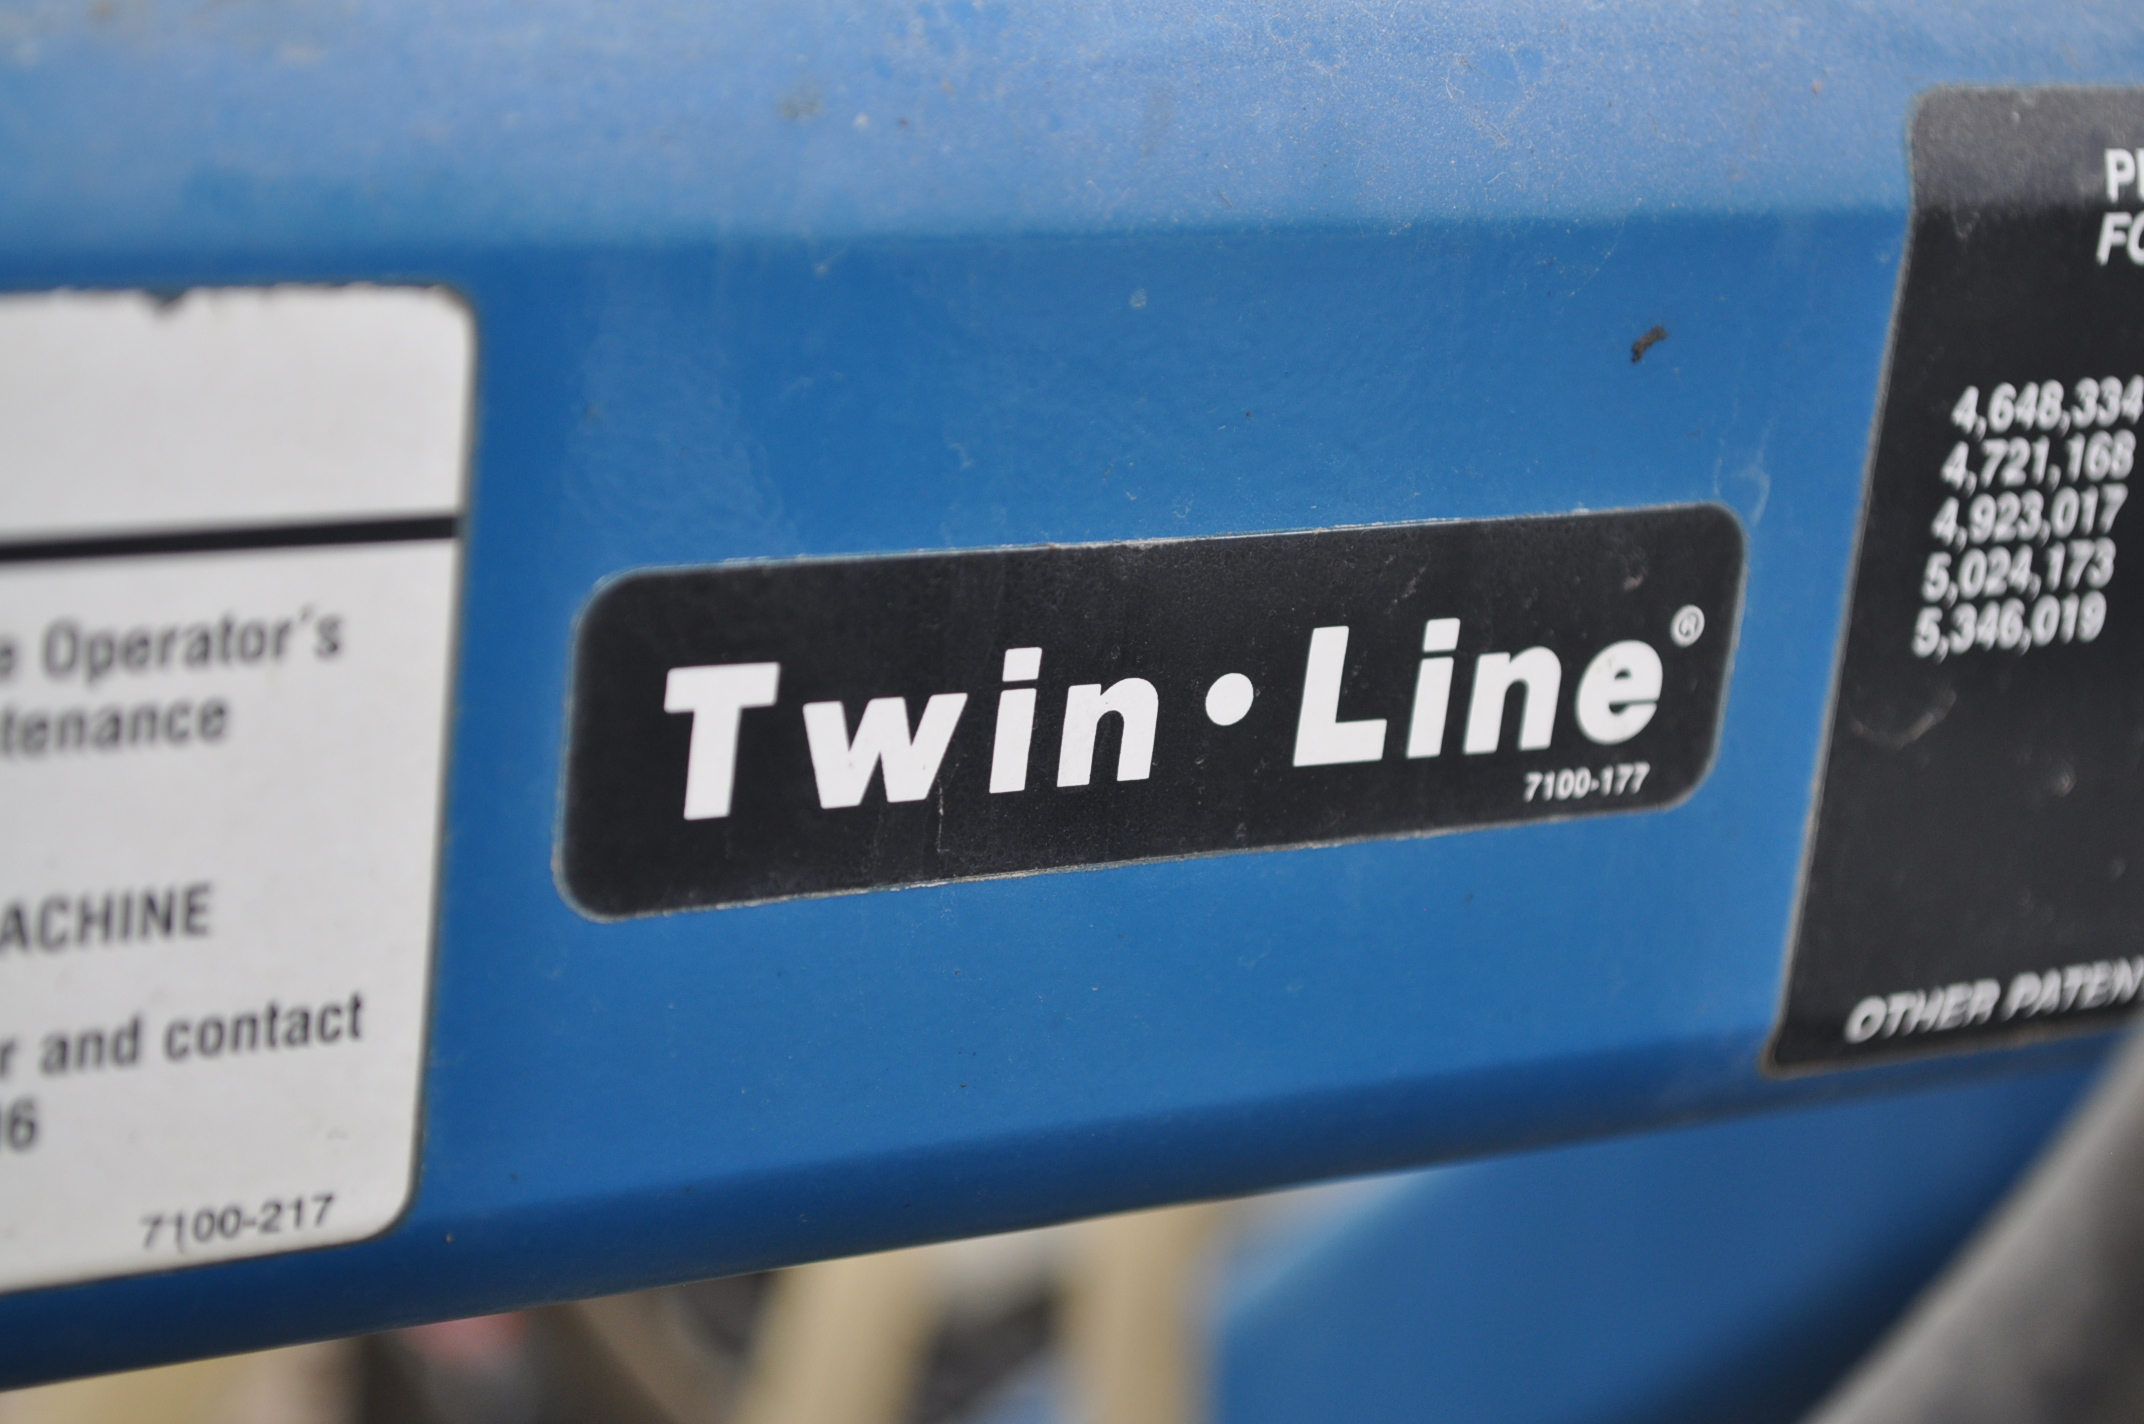 Kinze 3600TR planter, 12/24 twin row, Martin row cleaners, markers, finger pick up, cast closing - Image 6 of 20